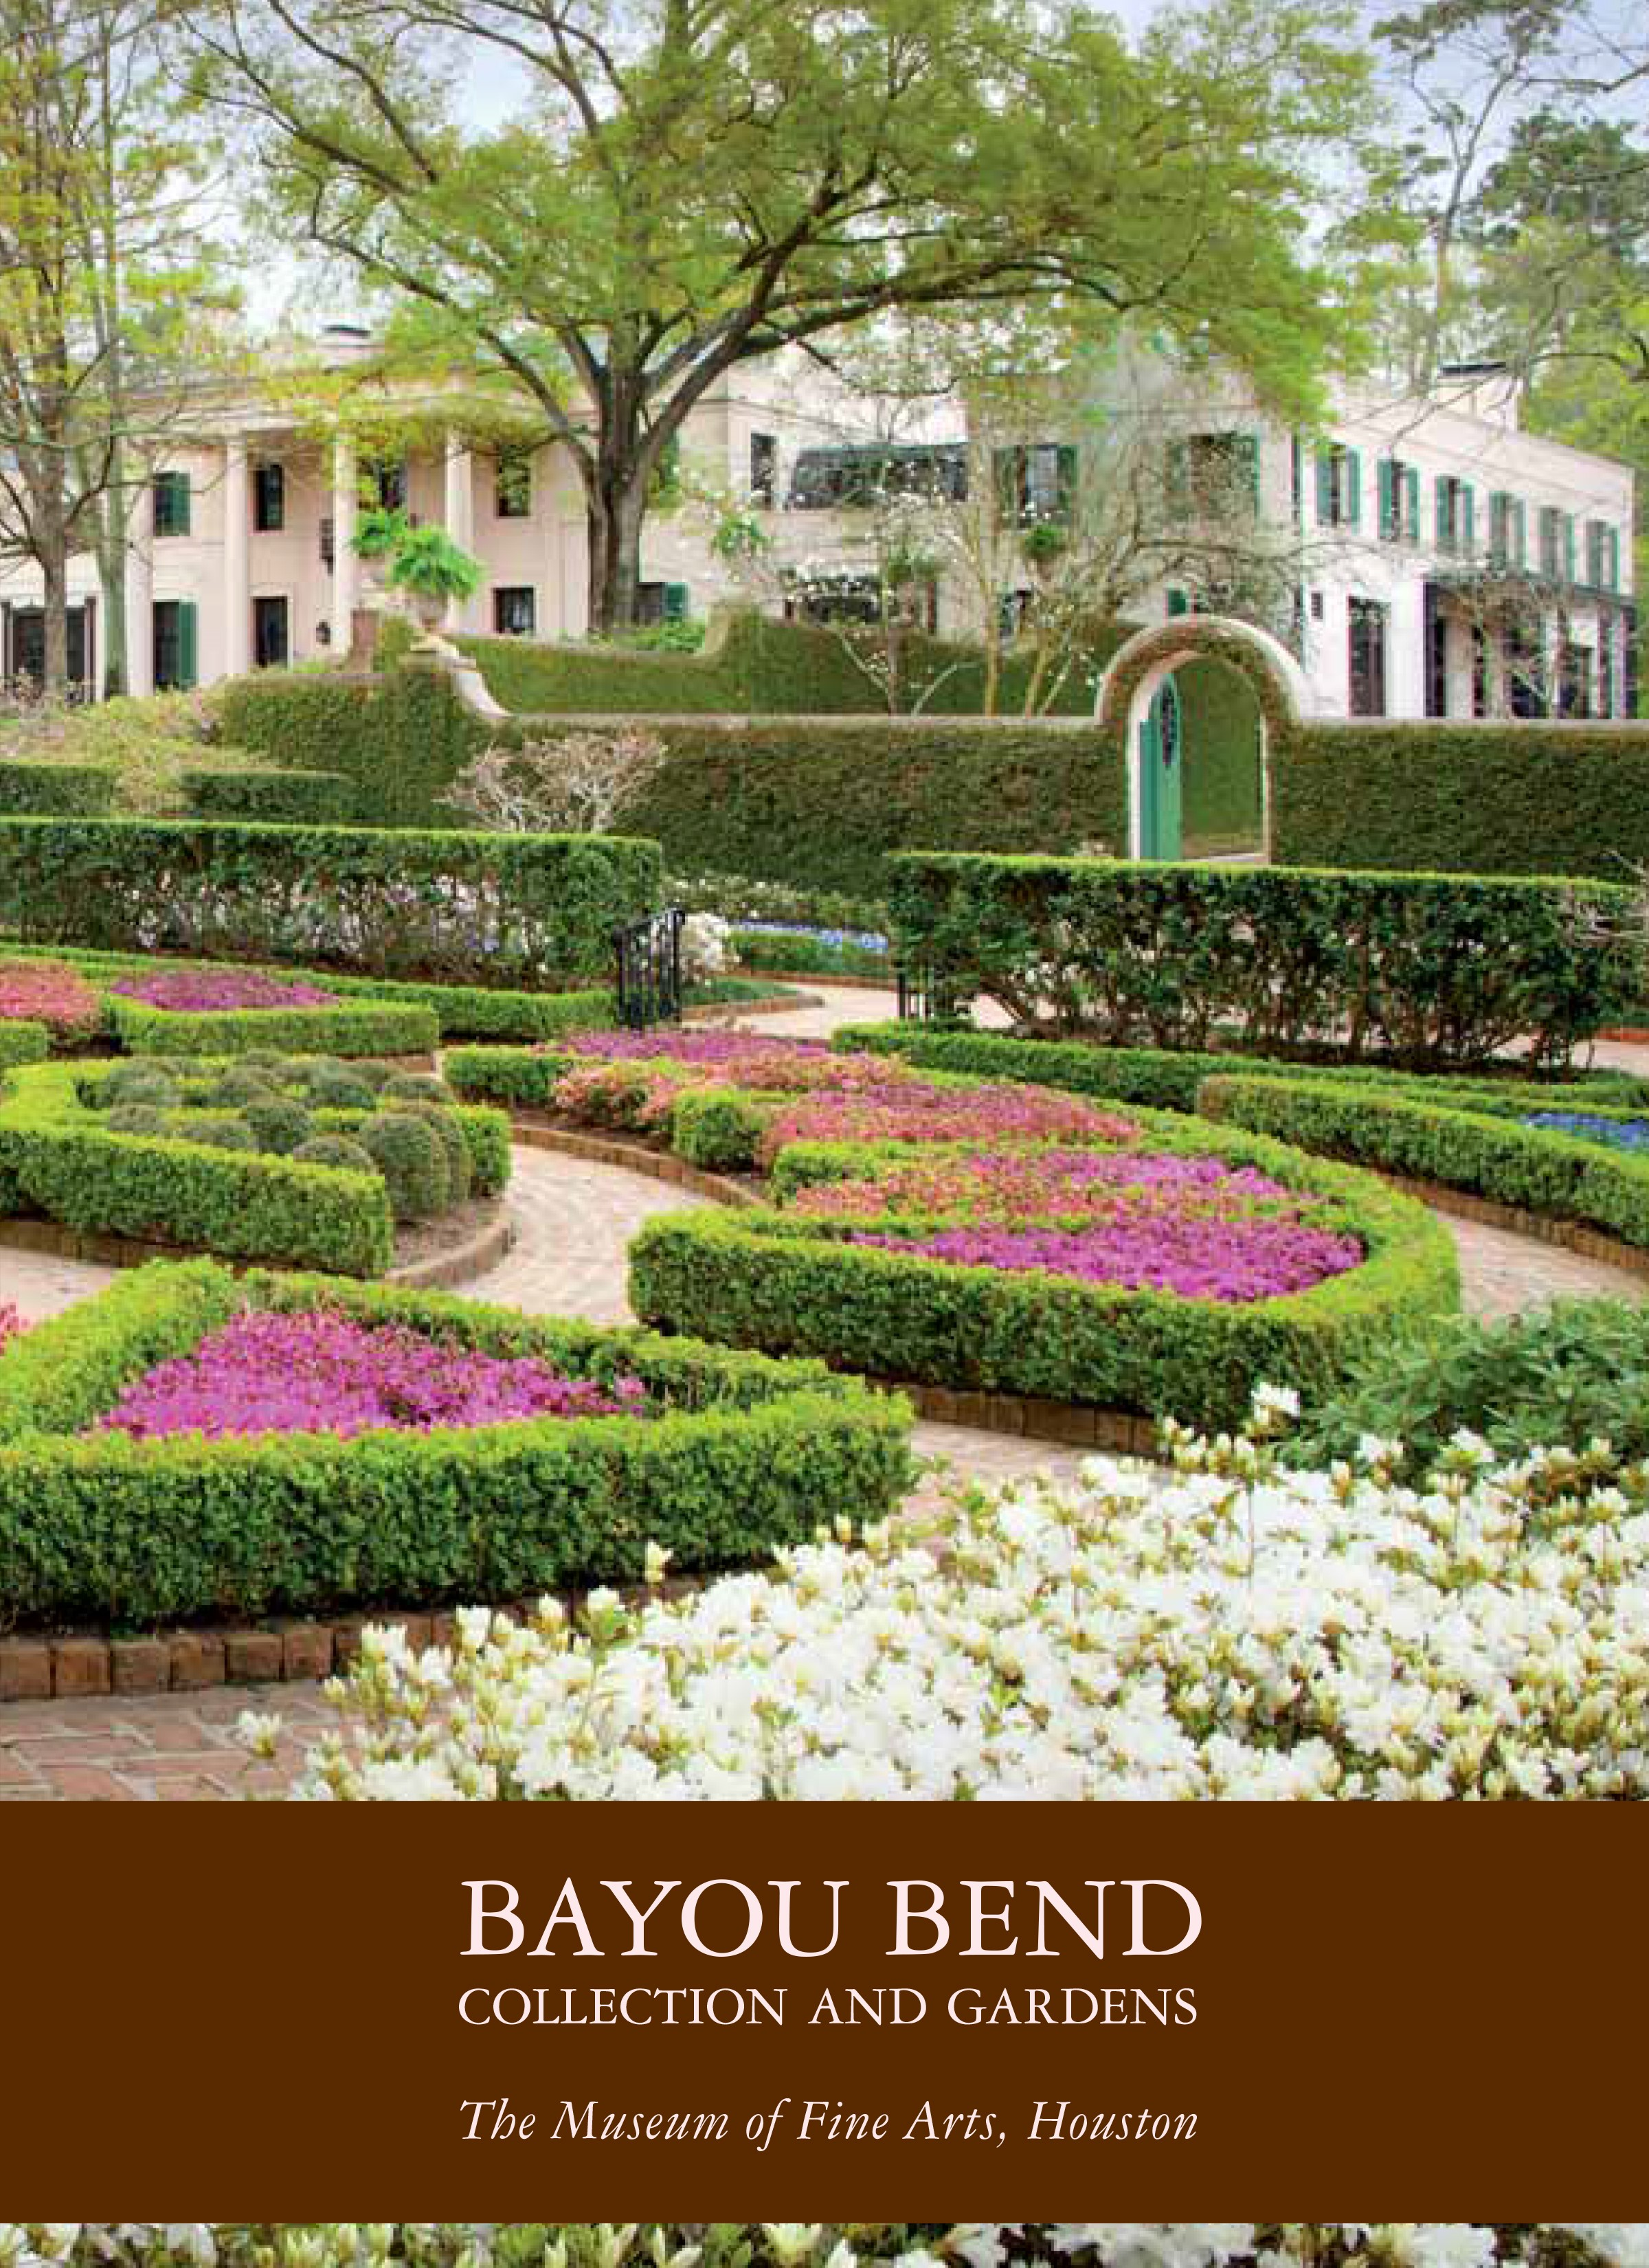 bayou bend souvenir book cover